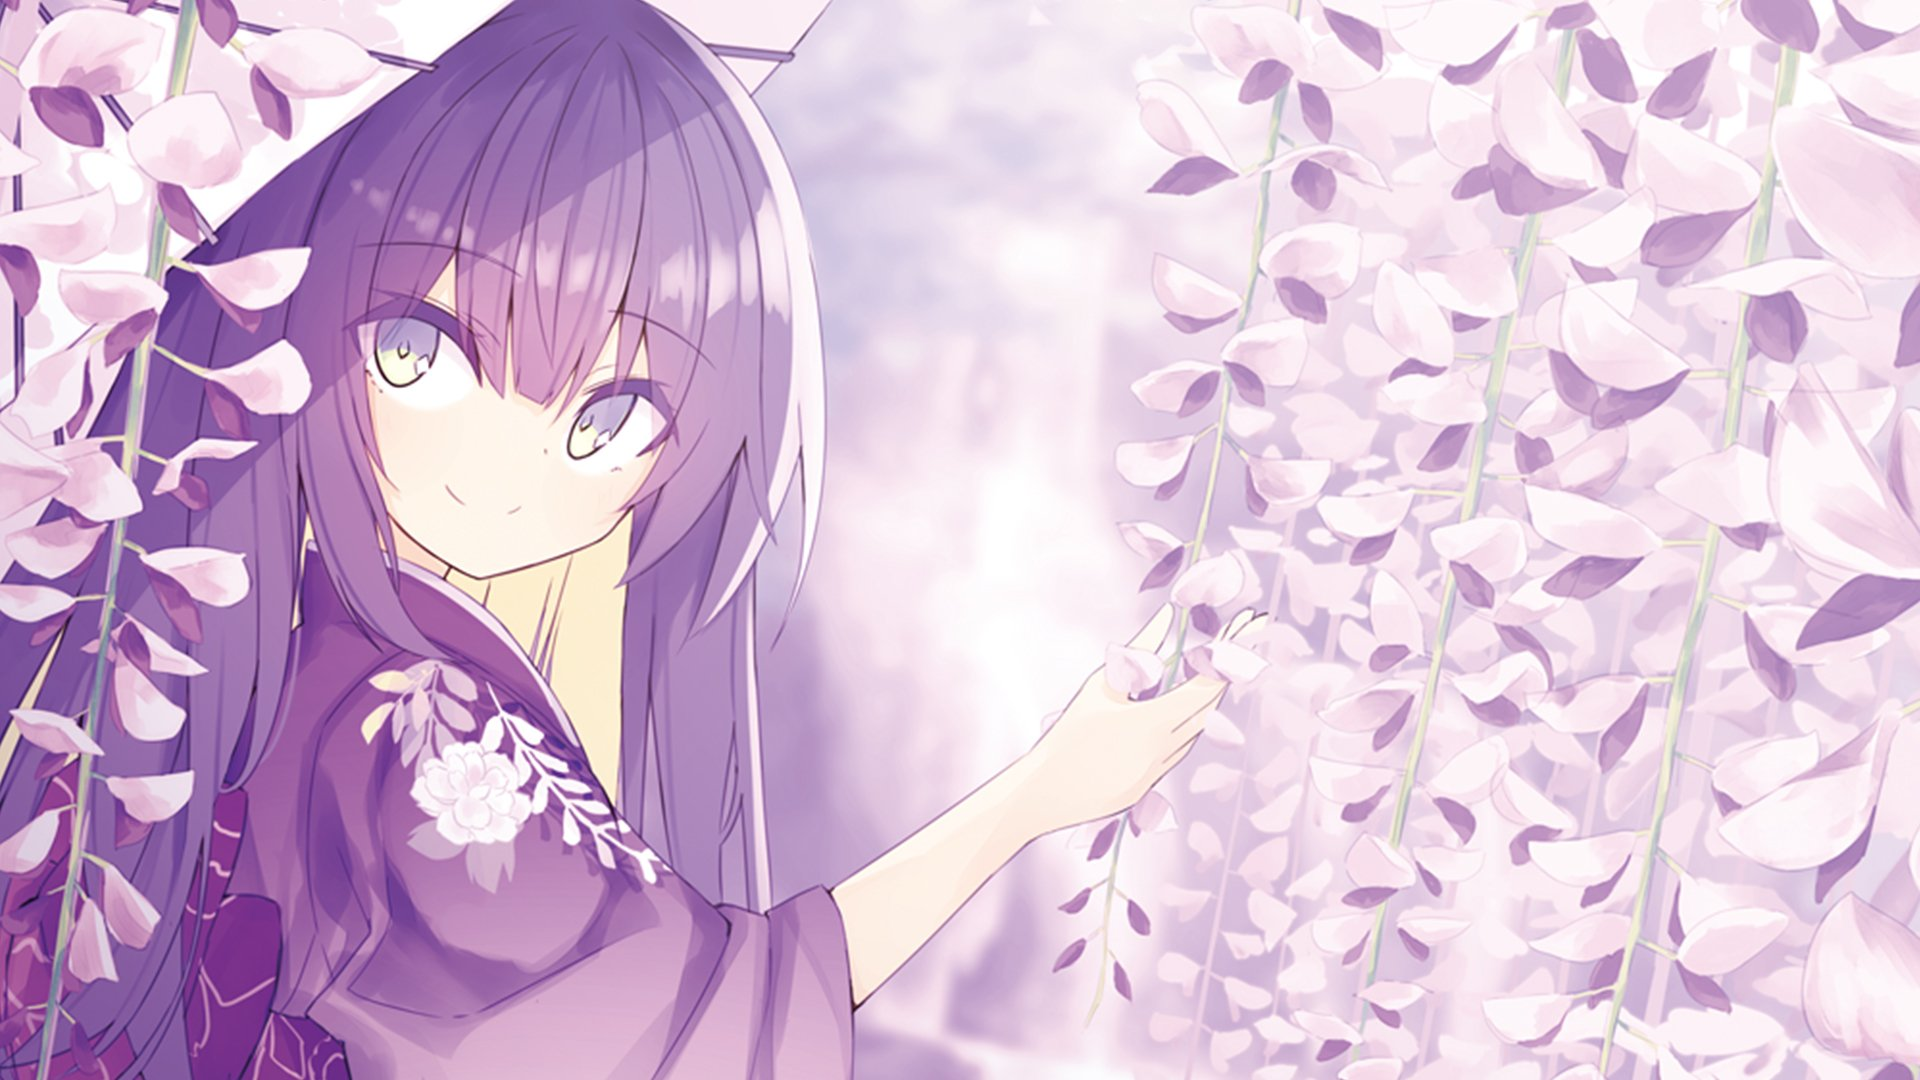 Anime girl cherry blossom hd wallpaper background image - Anime cherry blossom wallpaper ...